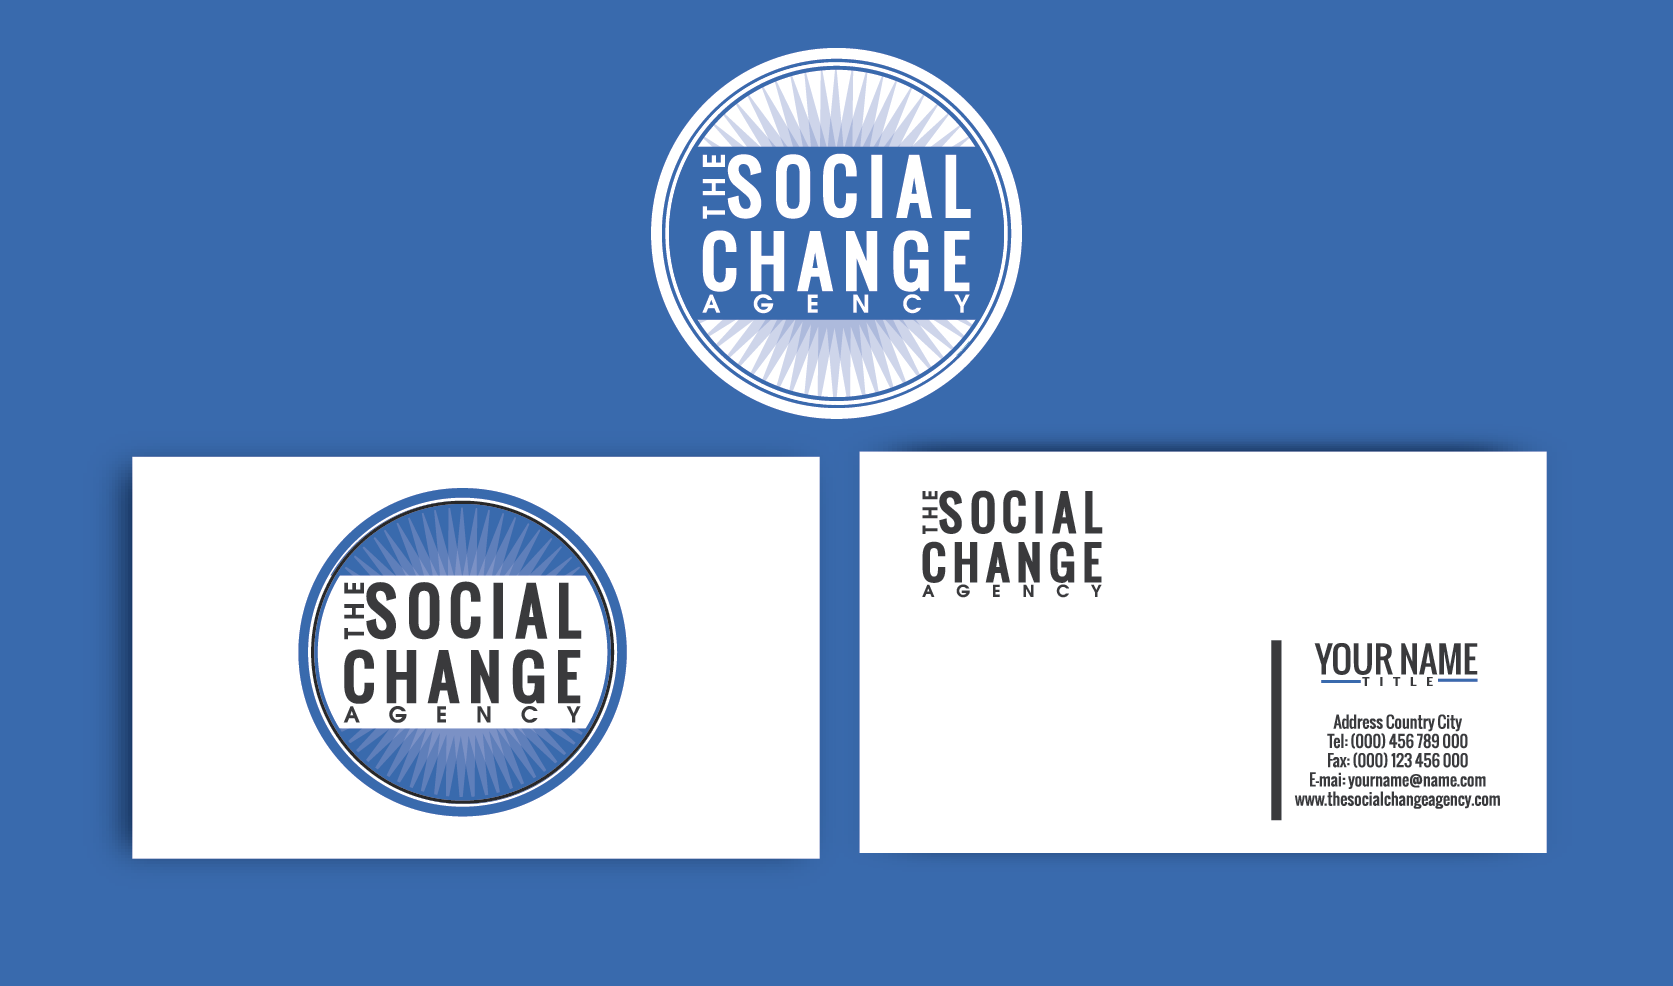 The Social Change Agency needs a new logo and business card